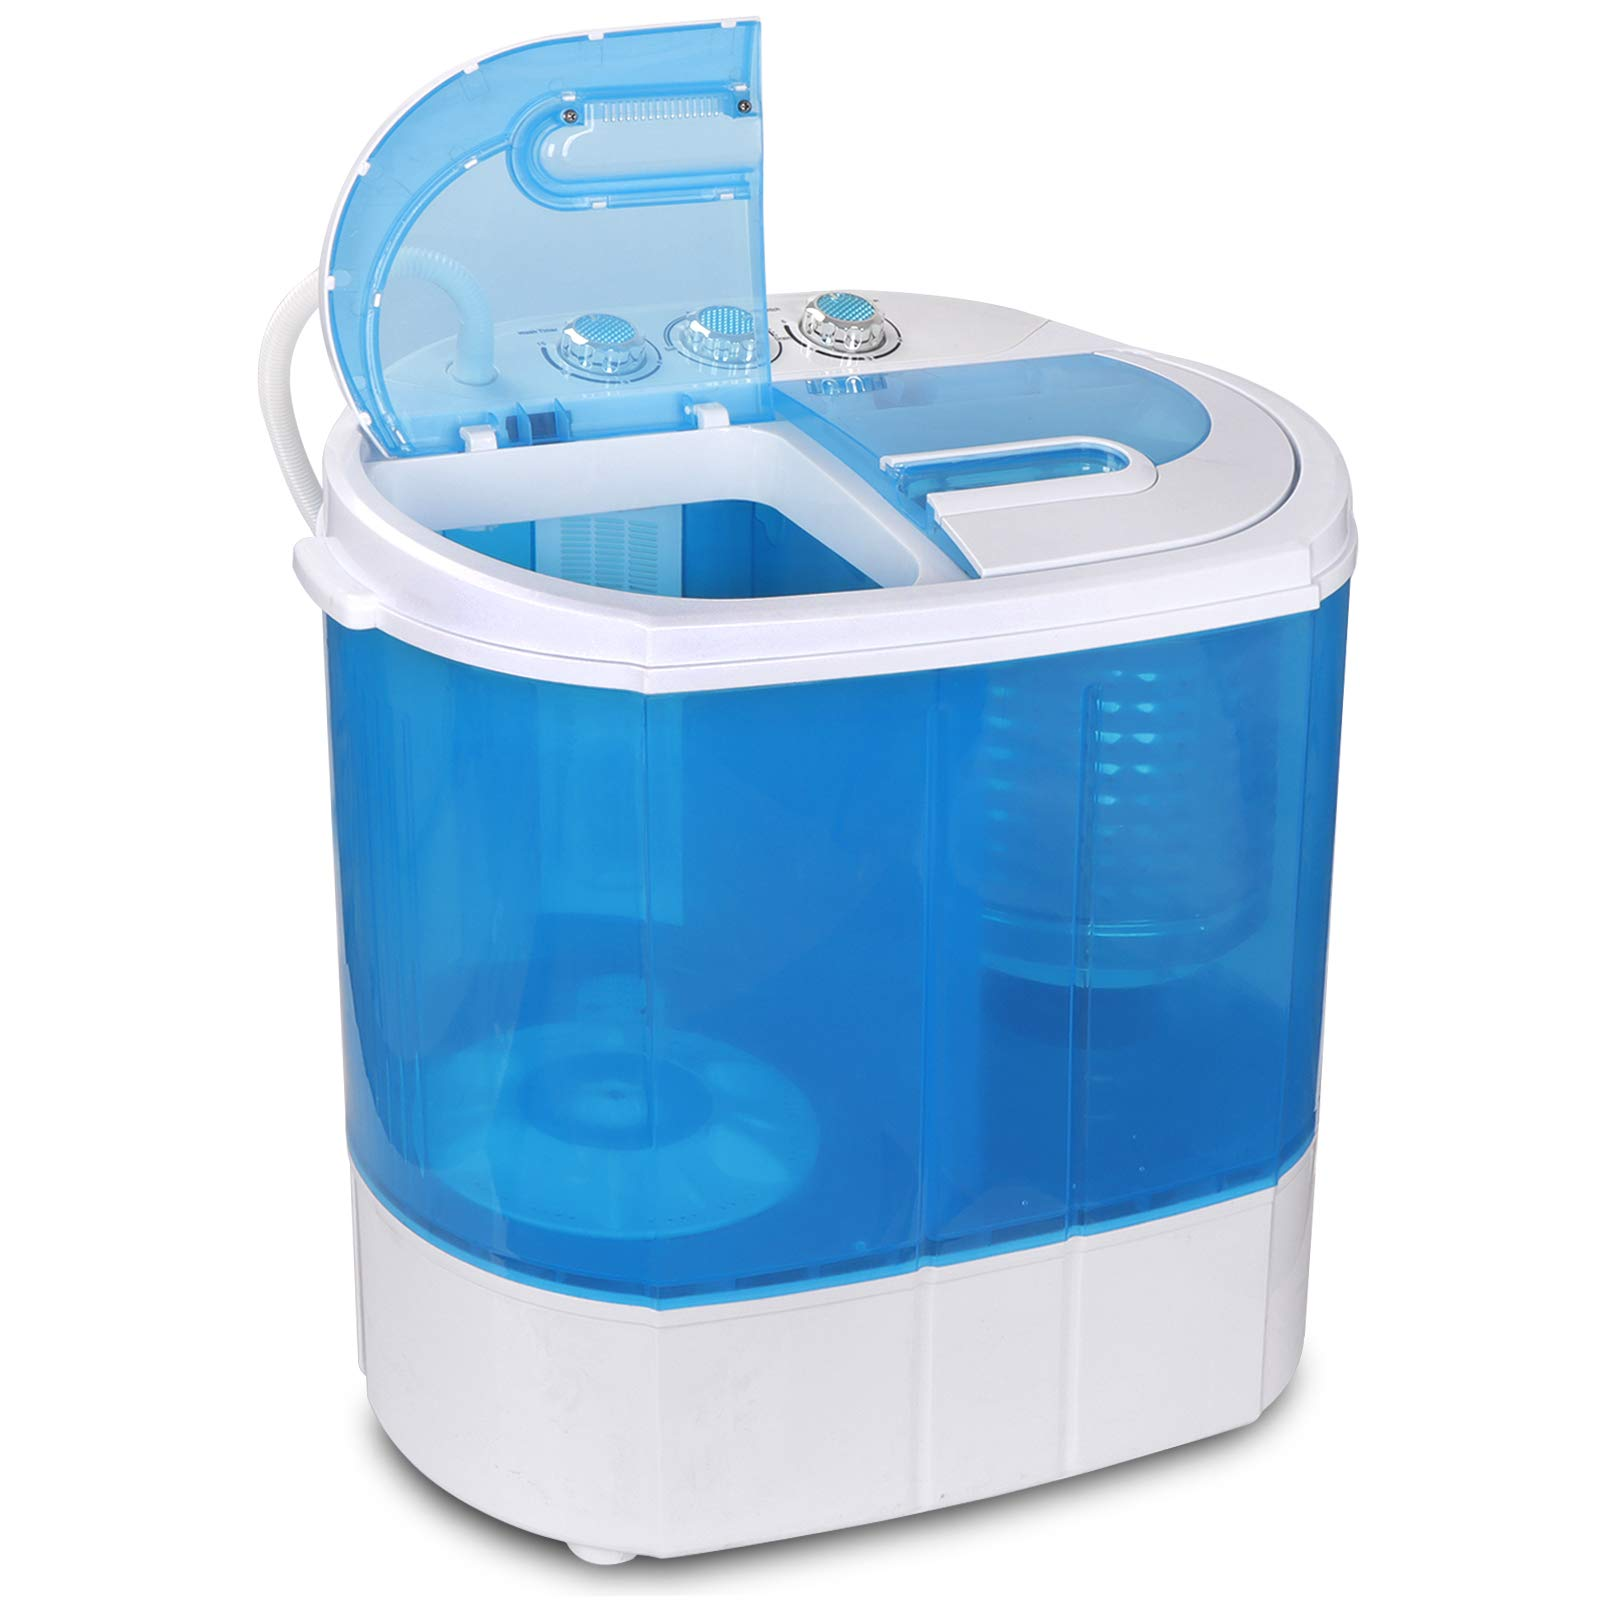 BBBuy Mini Portable Washing Machine,Twin Tub Compact Washing Machine w/Washer Spinner, Gravity Drain Pump and Drain Hose by BBBuy